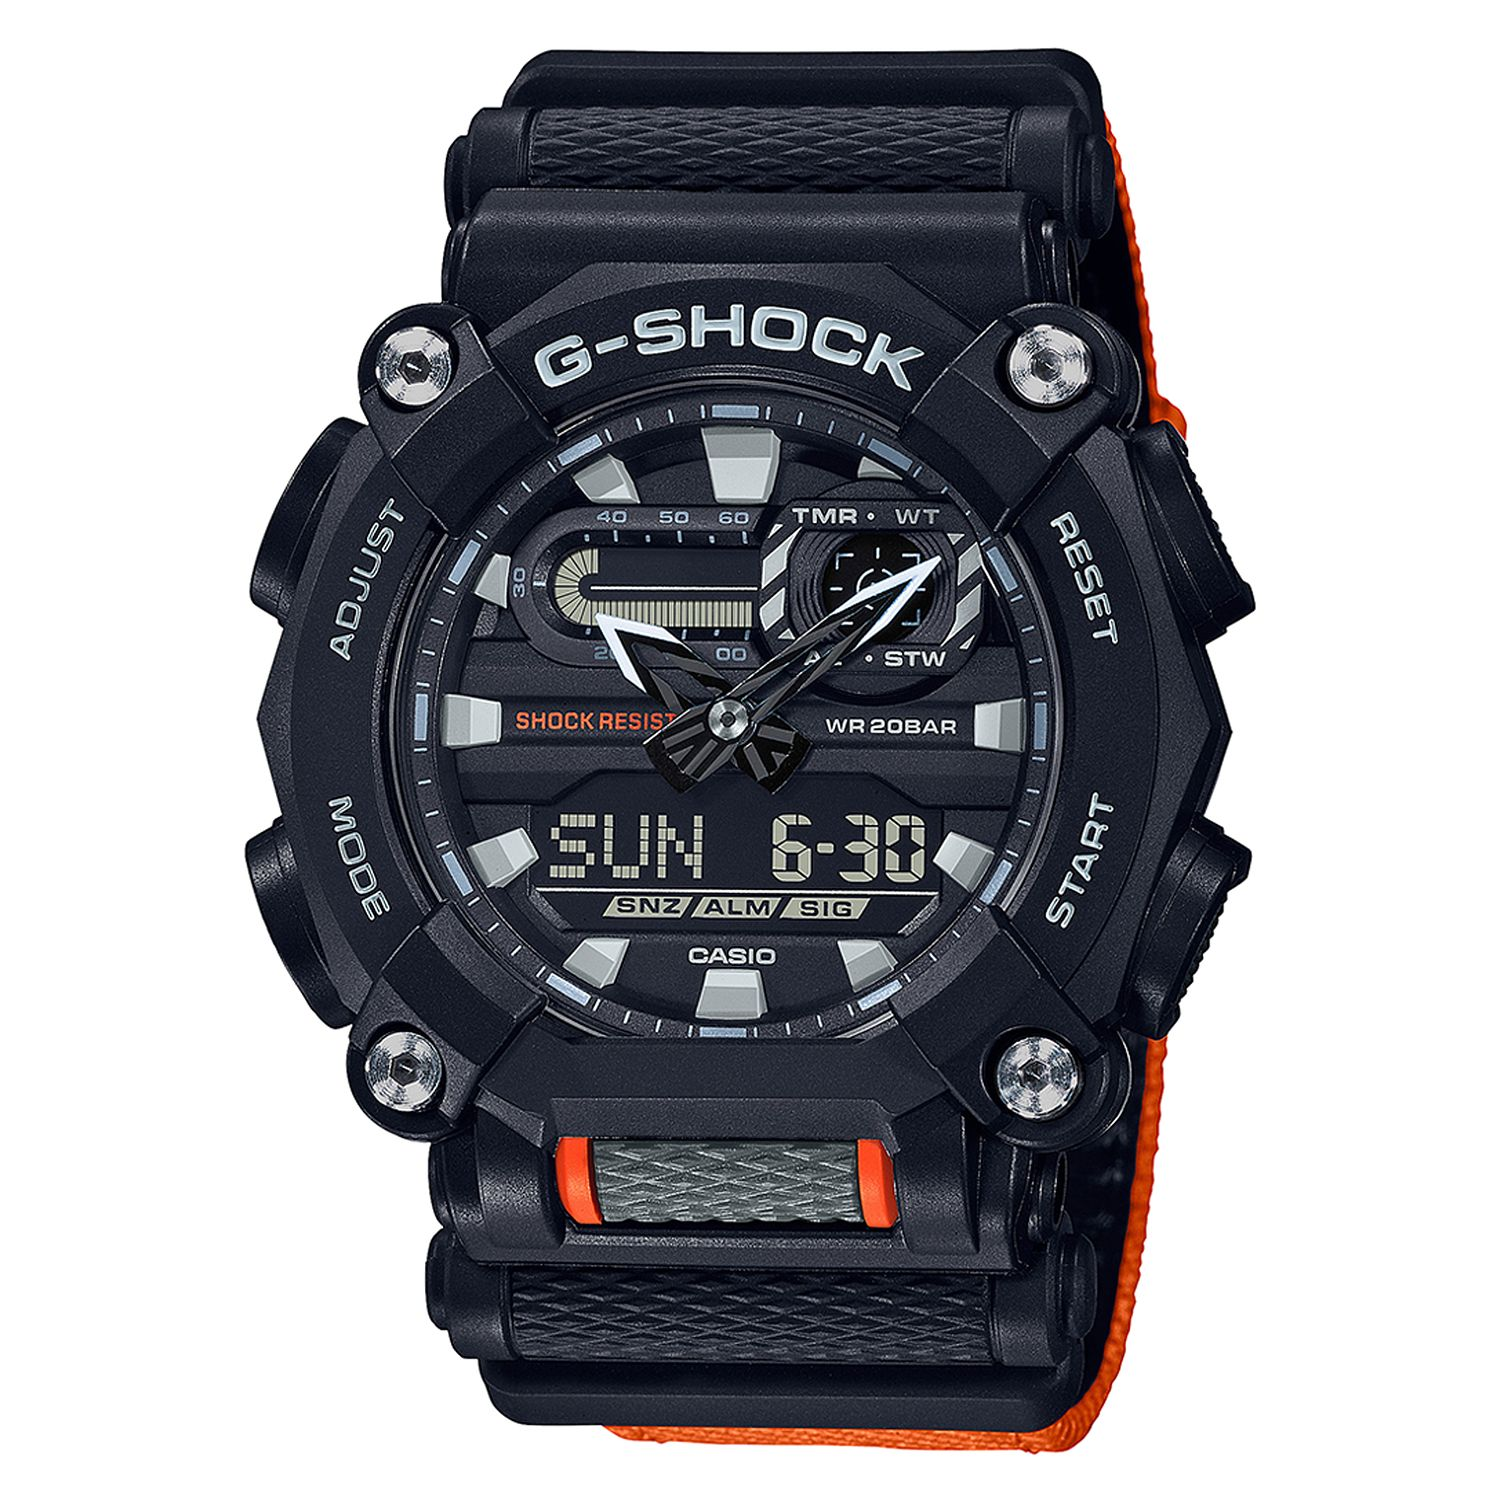 Casio G-Shock Heavy Duty Men's Orange Resin Strap Watch - Product number 1097032